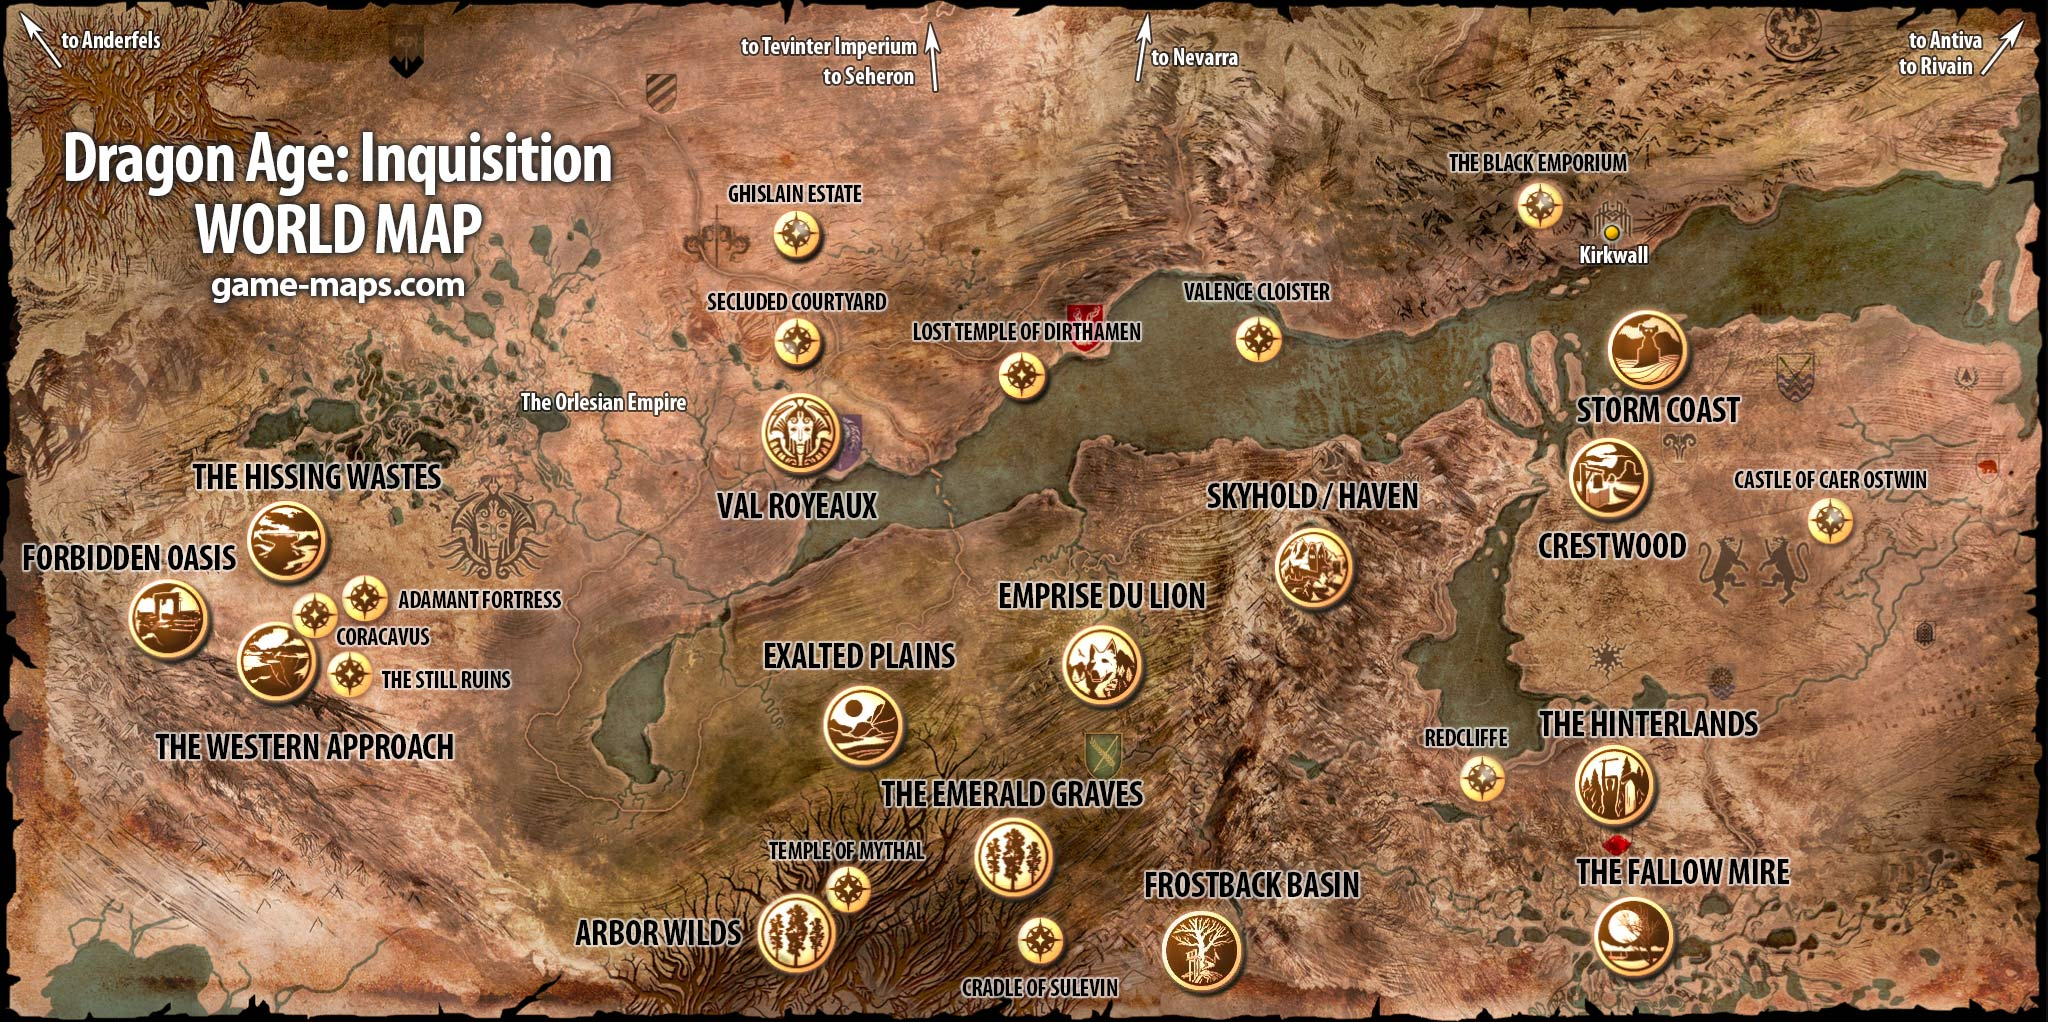 Dragon Age Inquisition World Map game